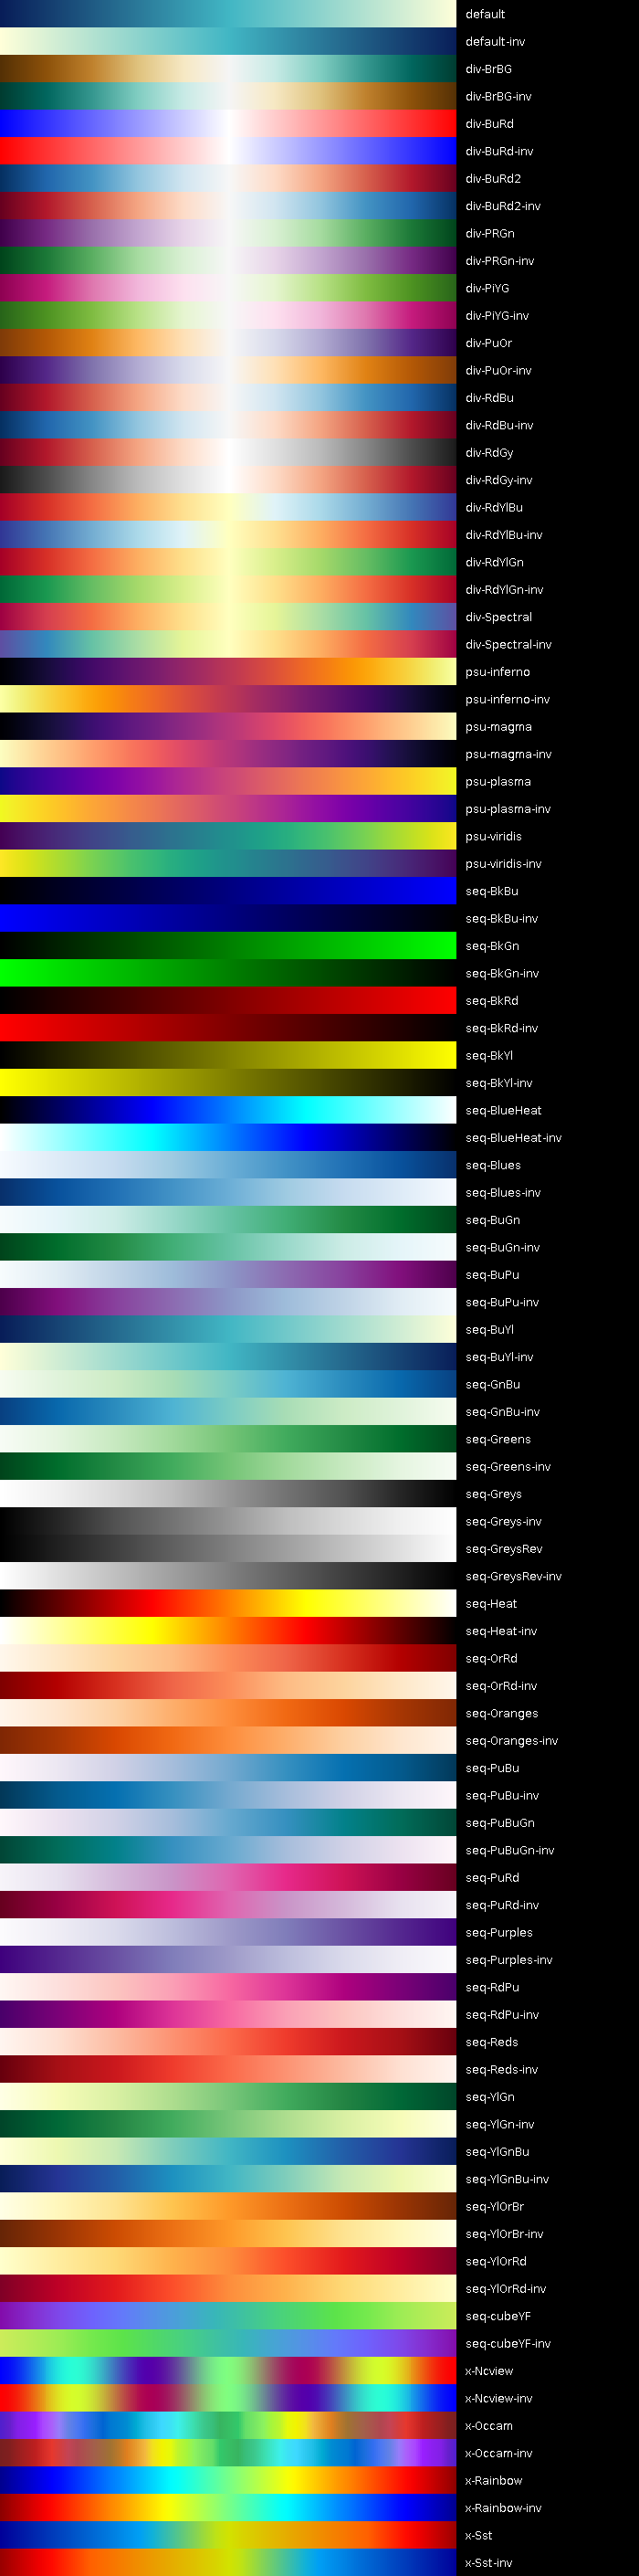 Available colour palettes in ncWMS